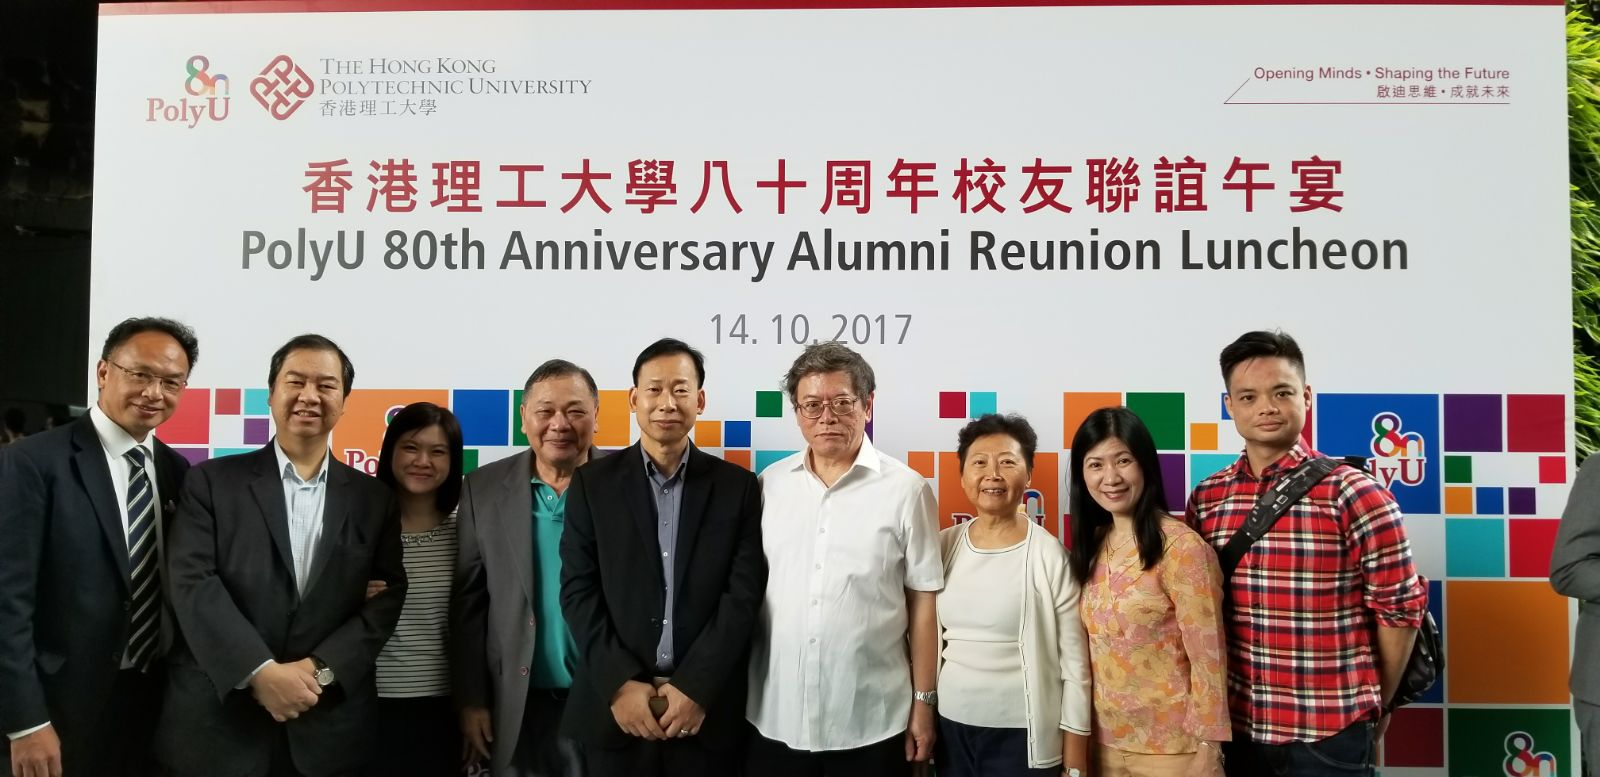 PolyU 80th Anniversary Alumni Reunion Luncheon